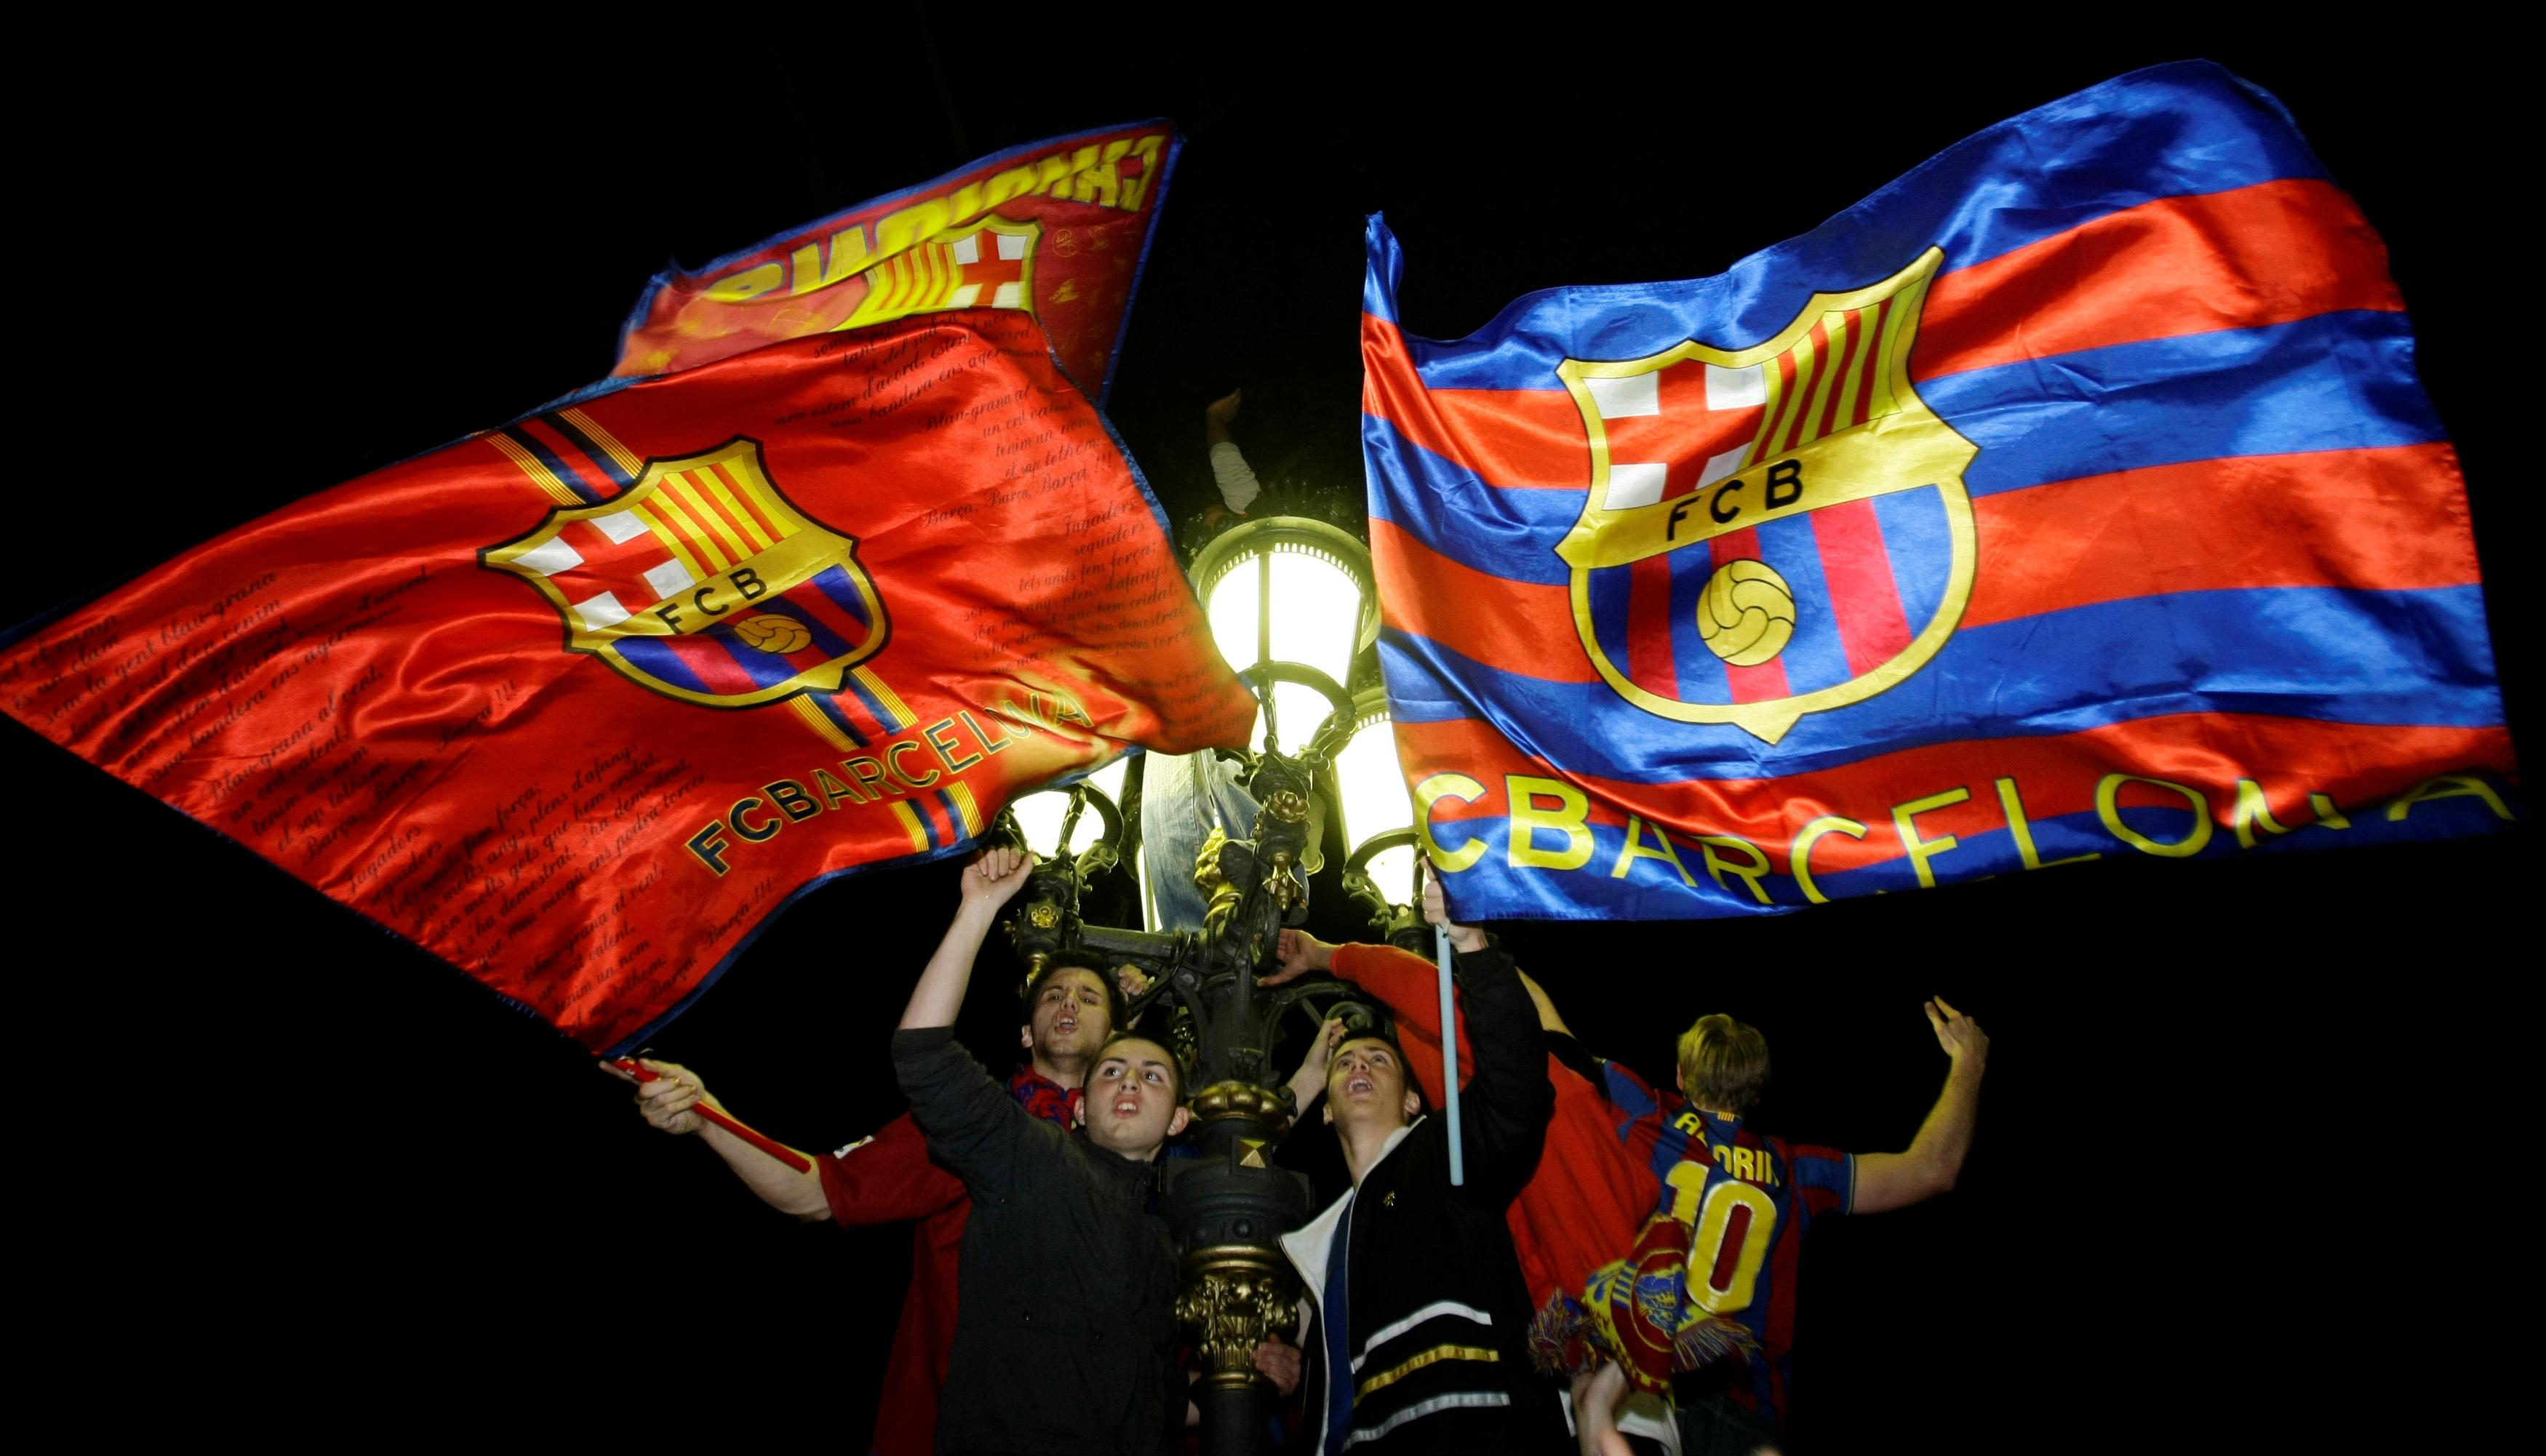 Barcelona members vote to withdraw medals awarded Franco